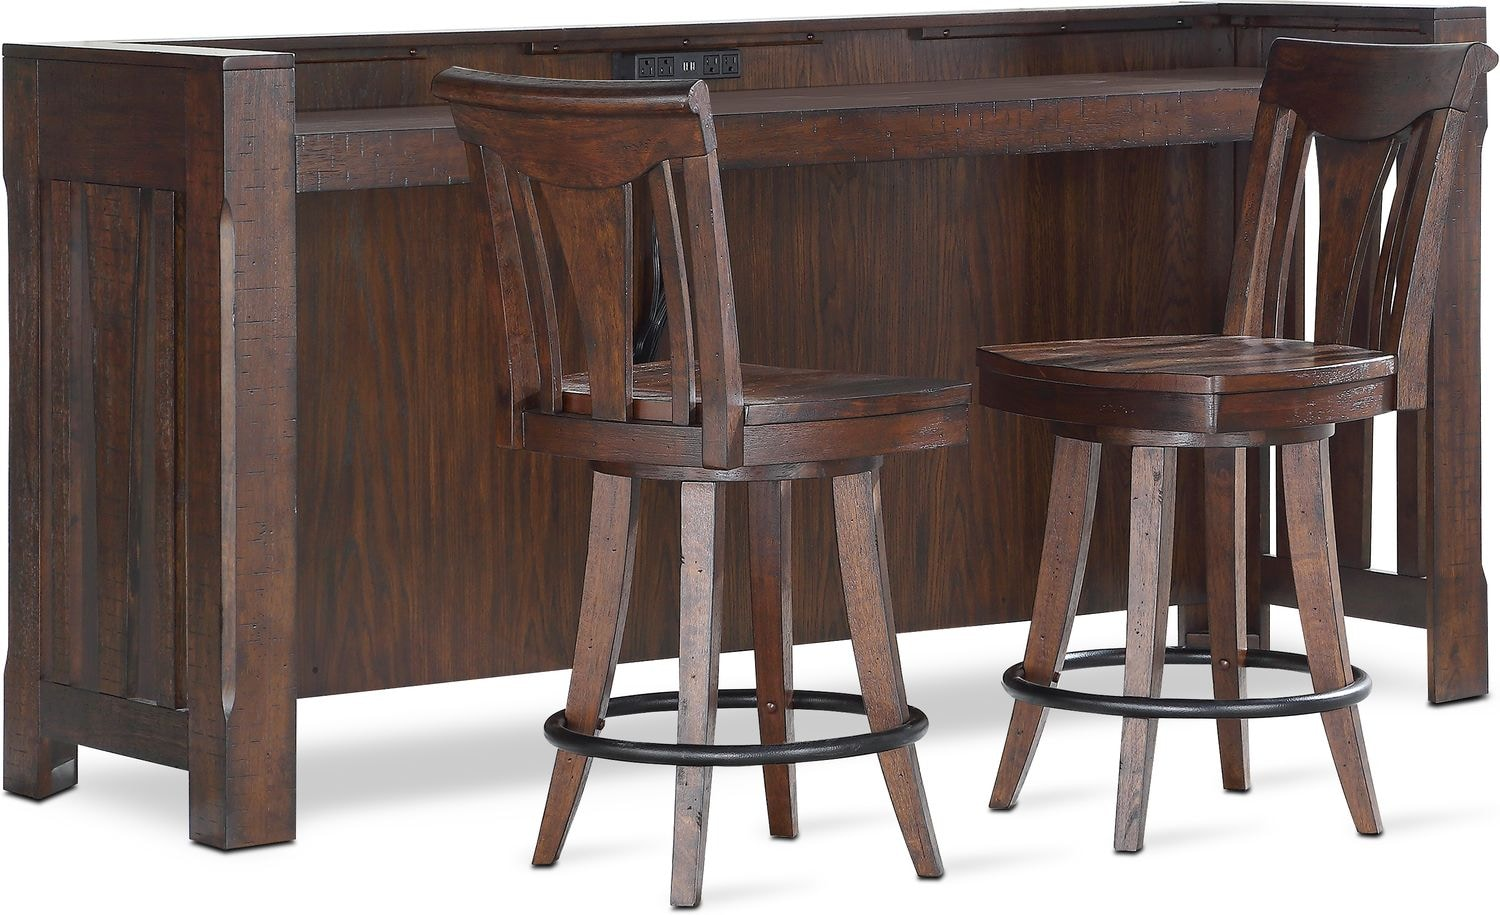 Dining Room Furniture   Sheffield Bar And 2 Counter Height Stools   Walnut